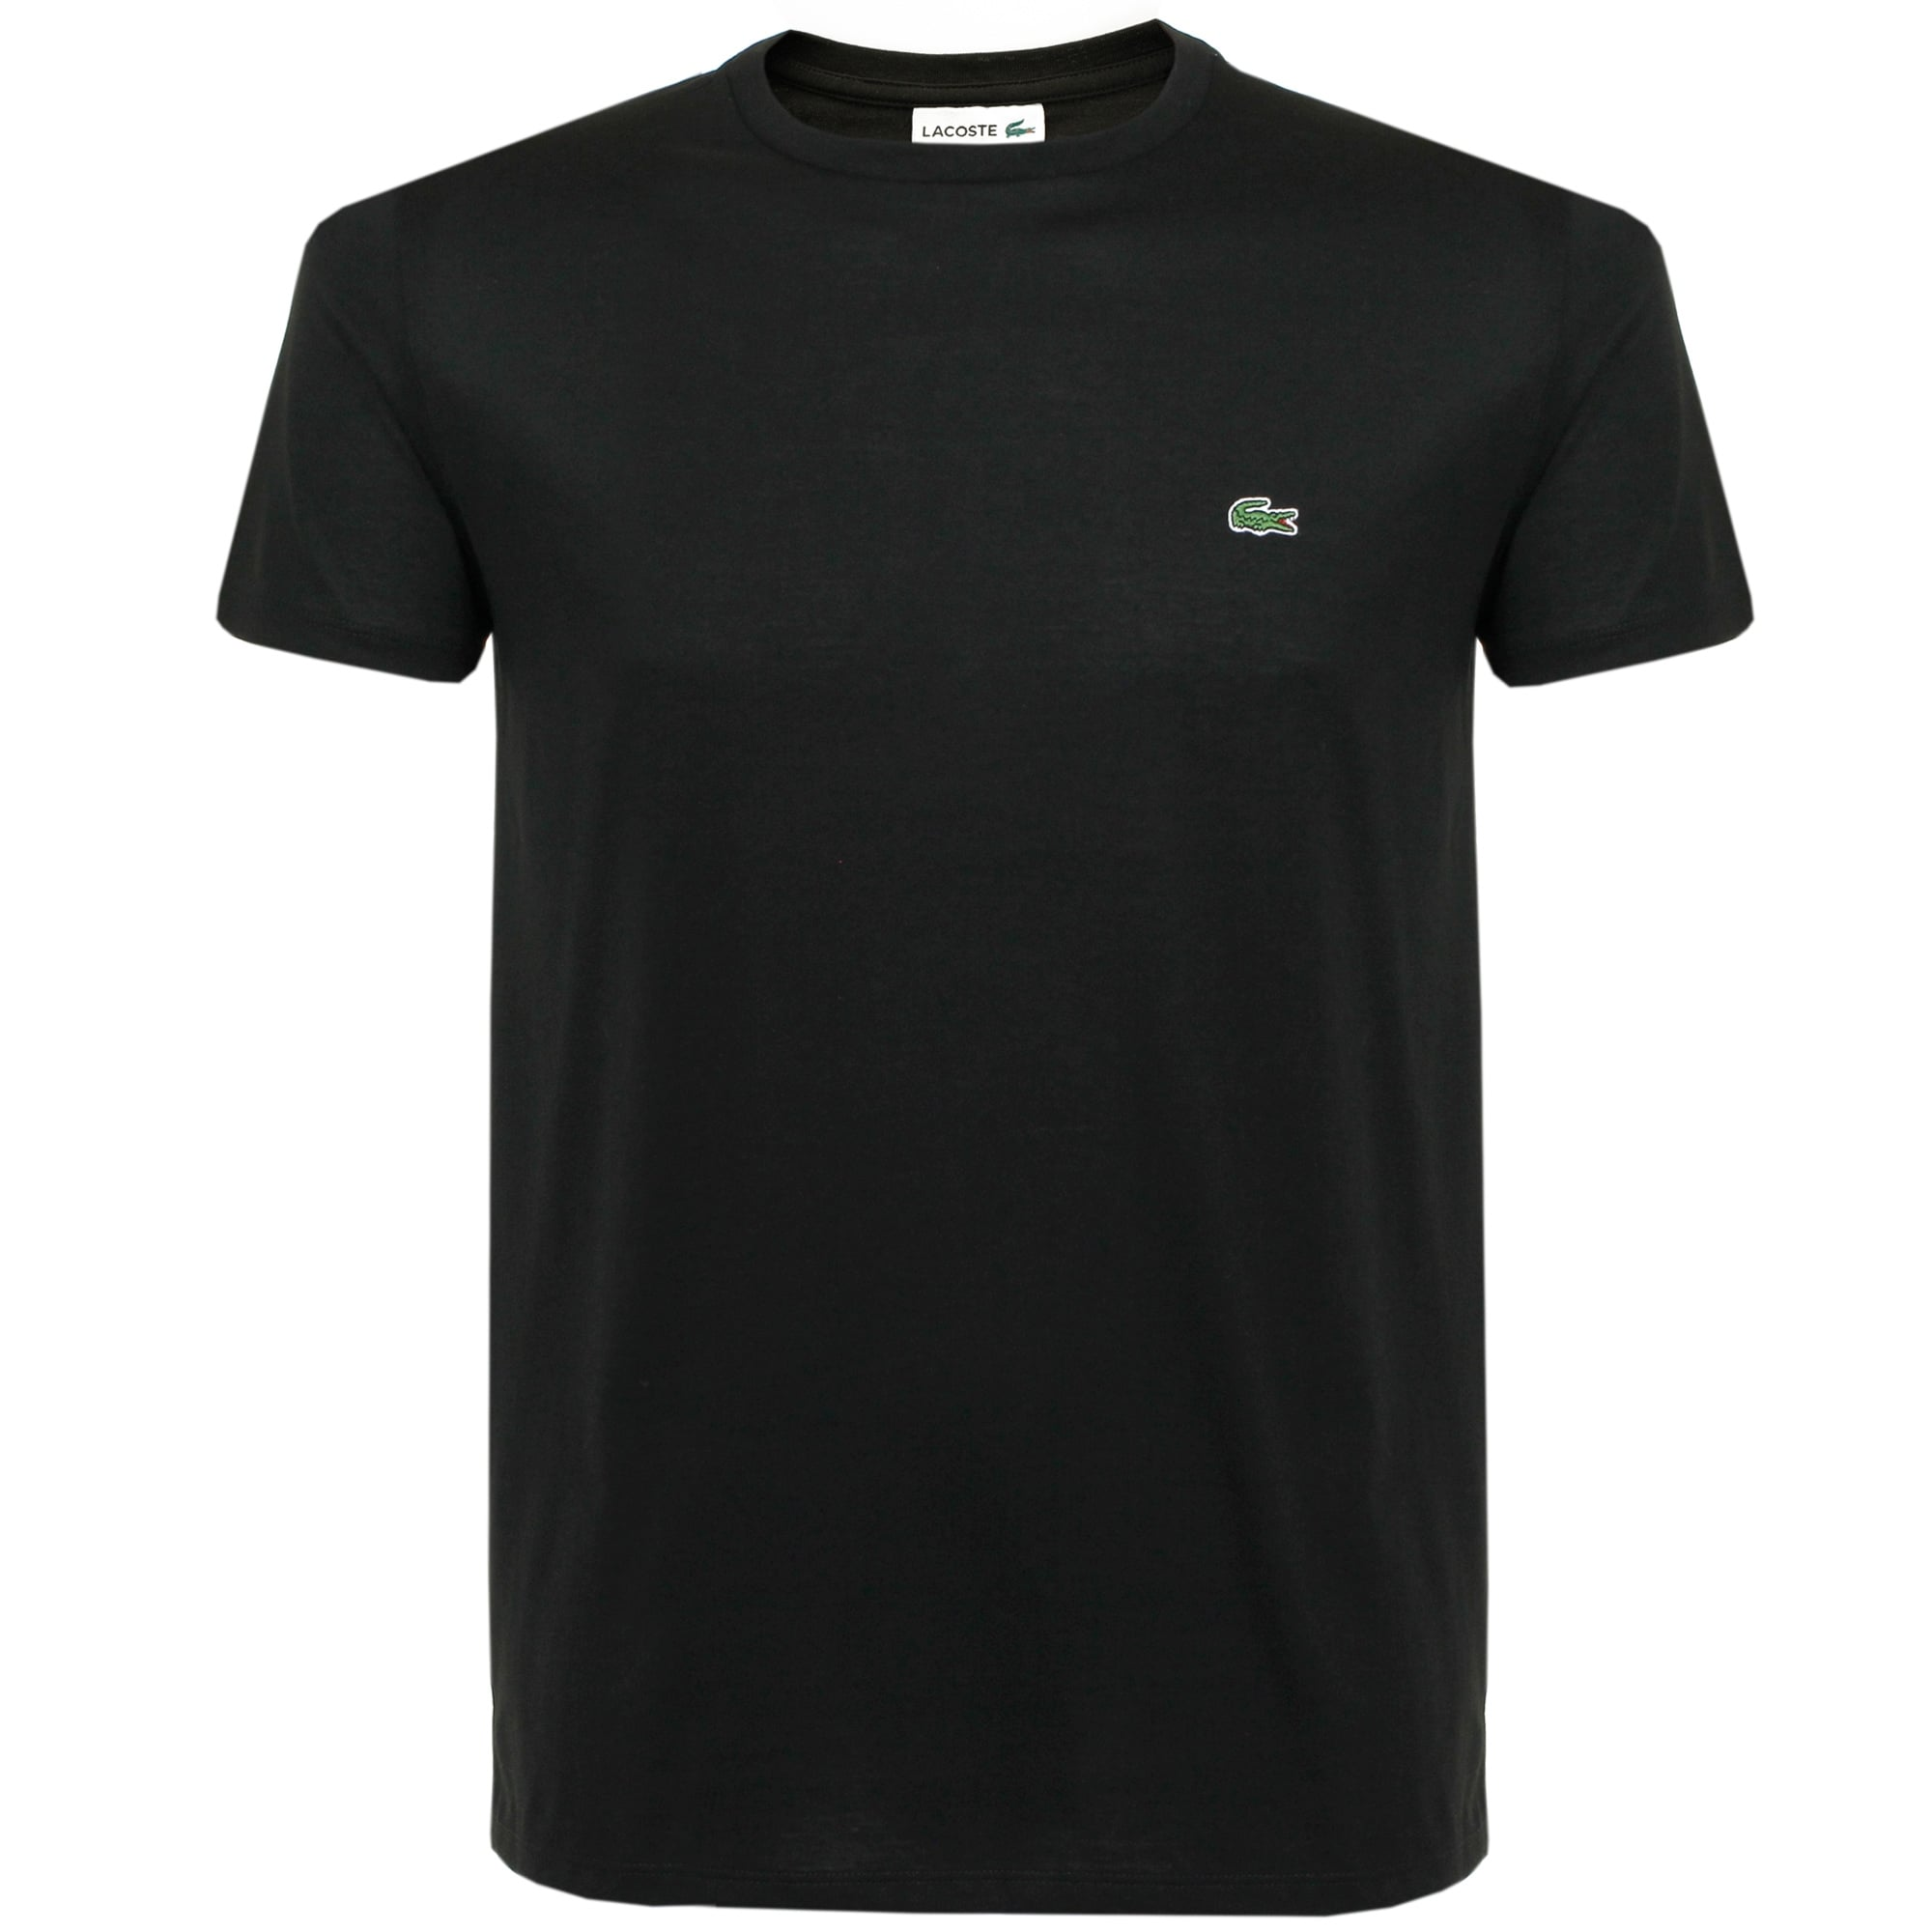 0d460d79a Lacoste Pima Cotton Black T-Shirt TH670900031